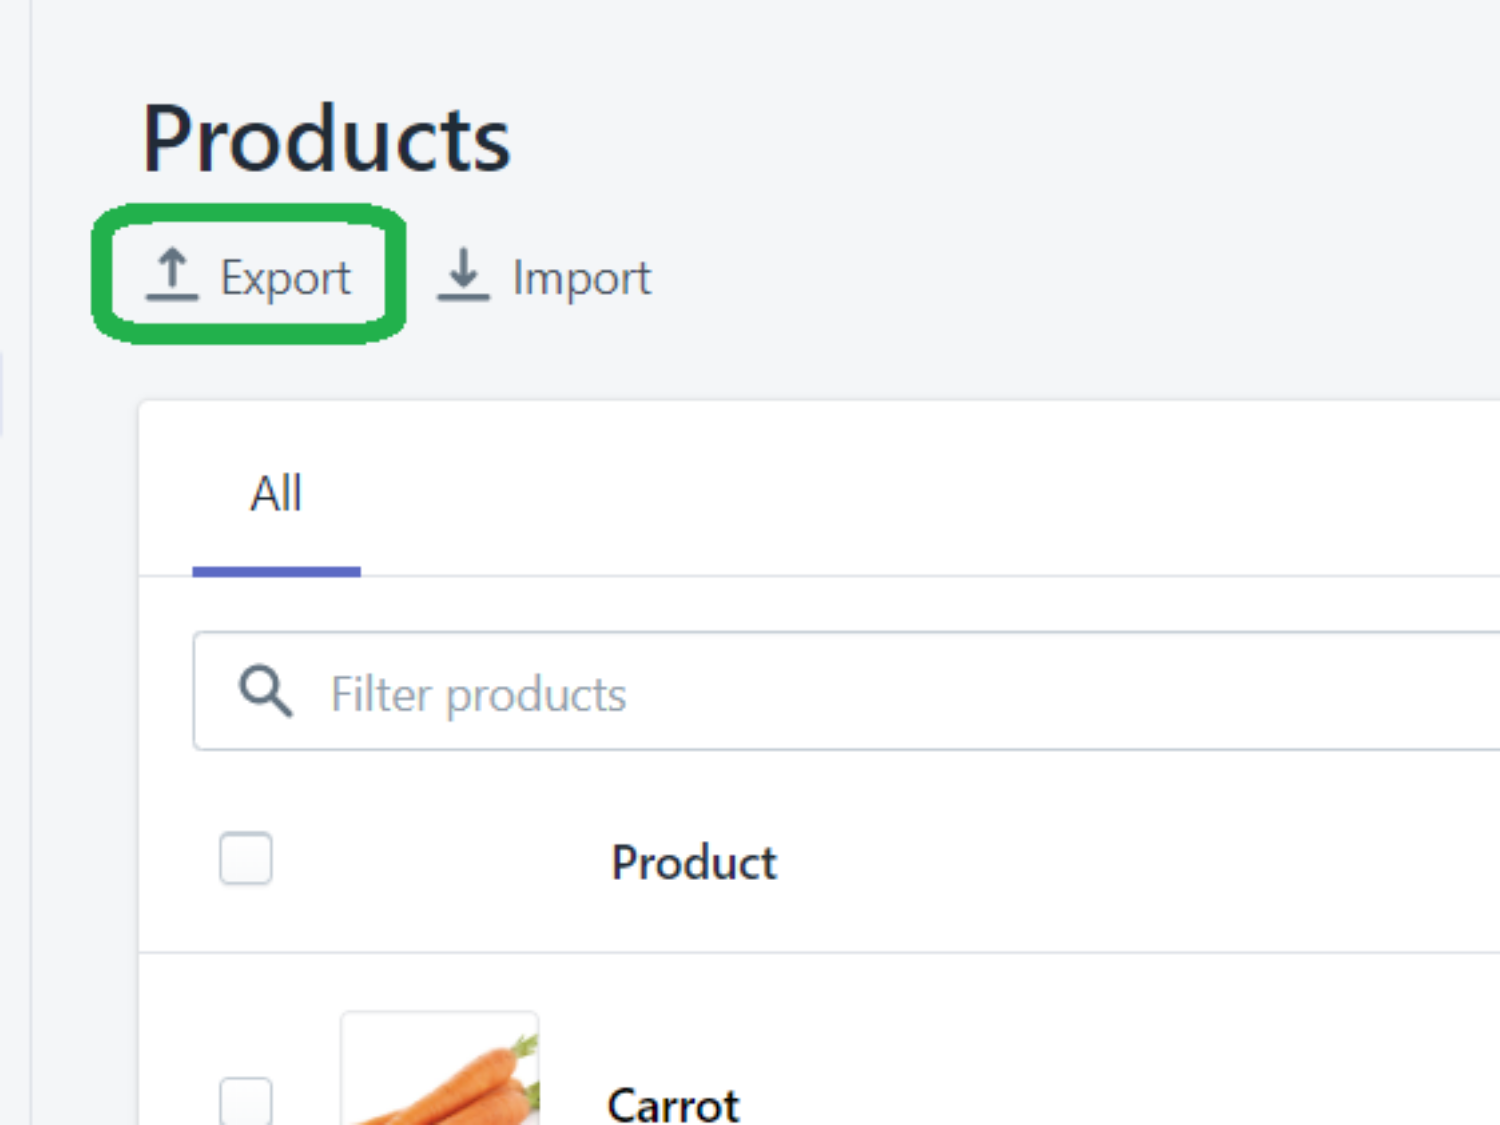 Product list page. Export button highlighted